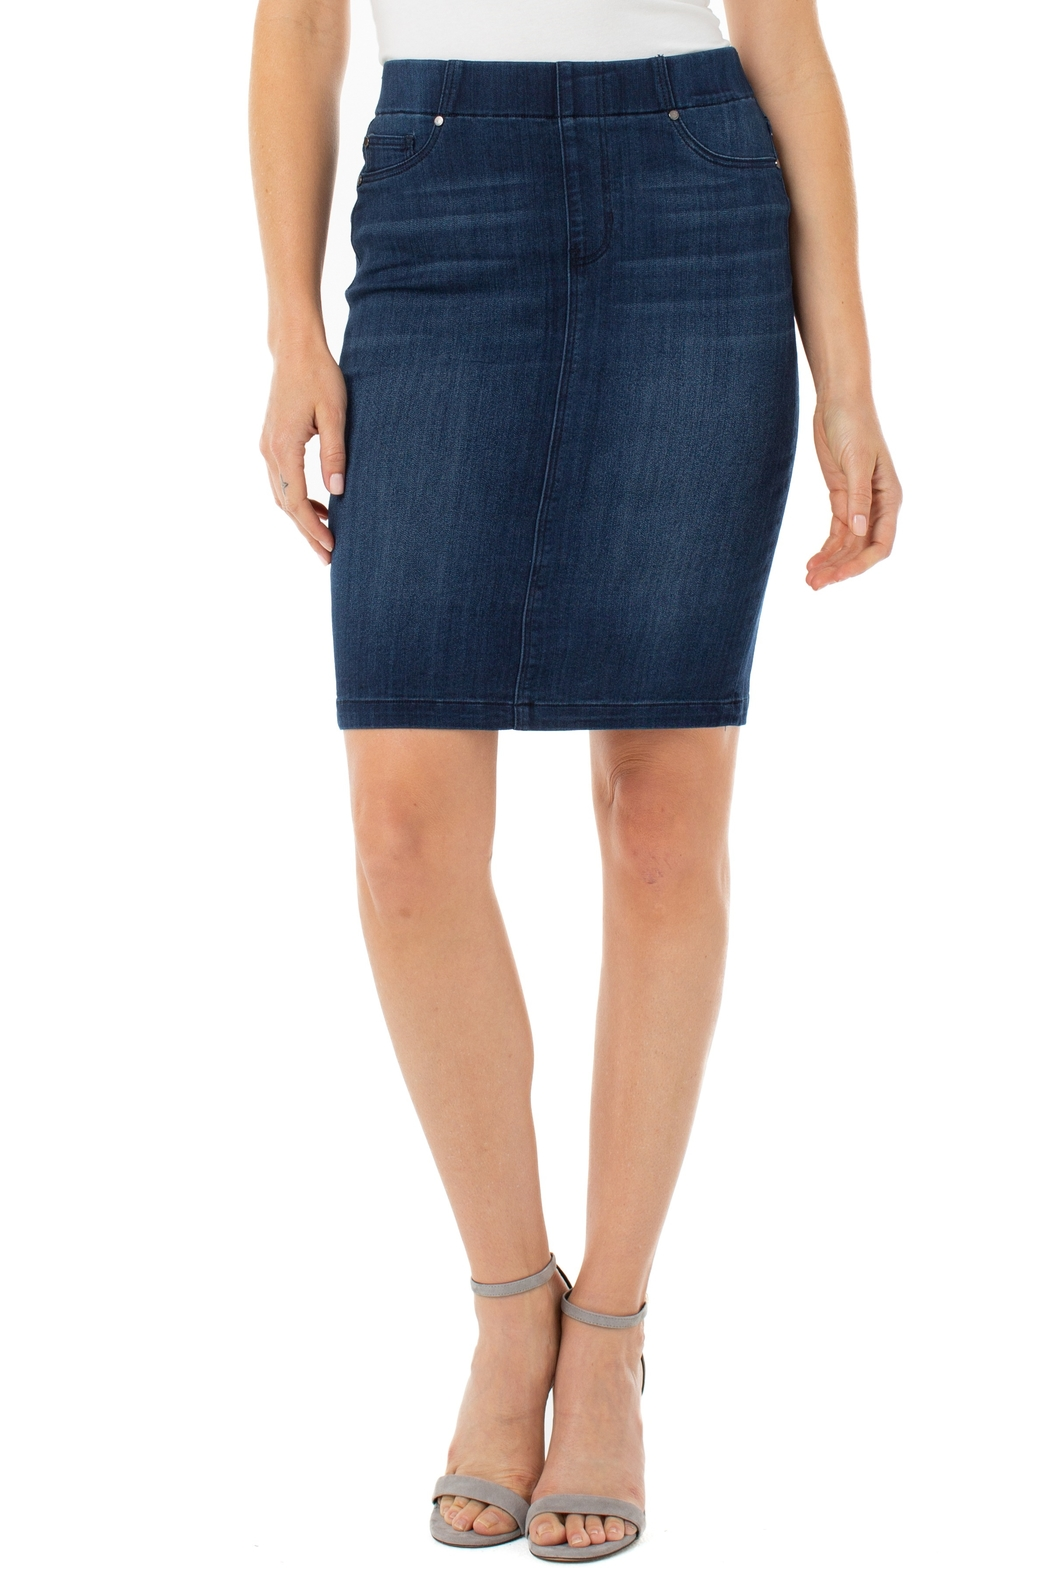 Liverpool Jean Company Pull on Denim Pencil Skirt - Main Image